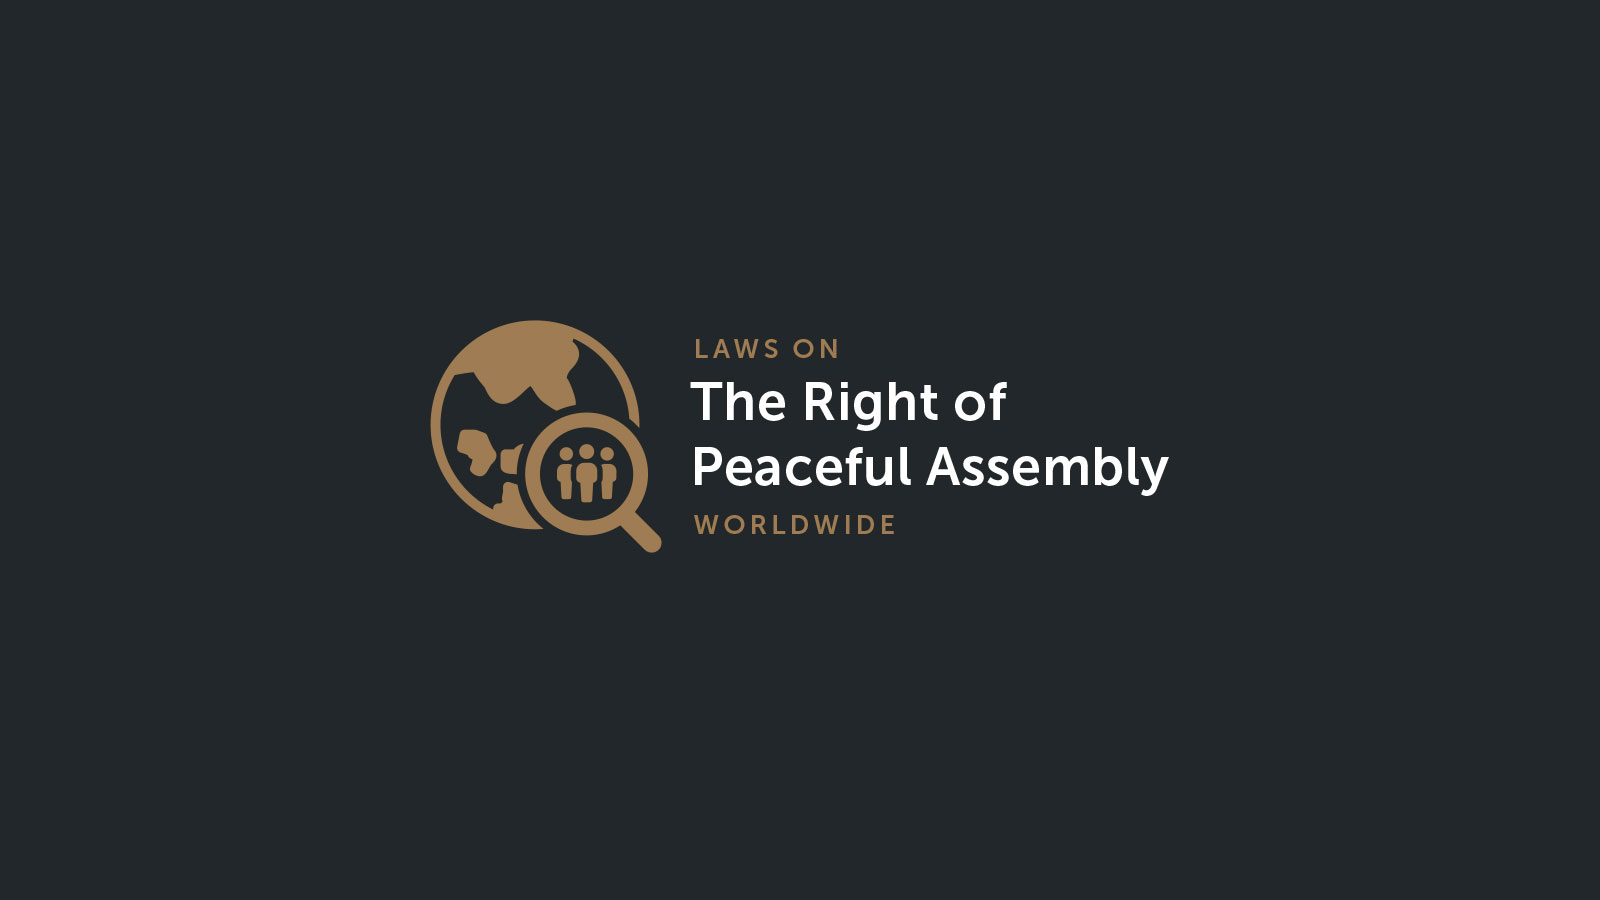 New ECNL website on freedom of assembly